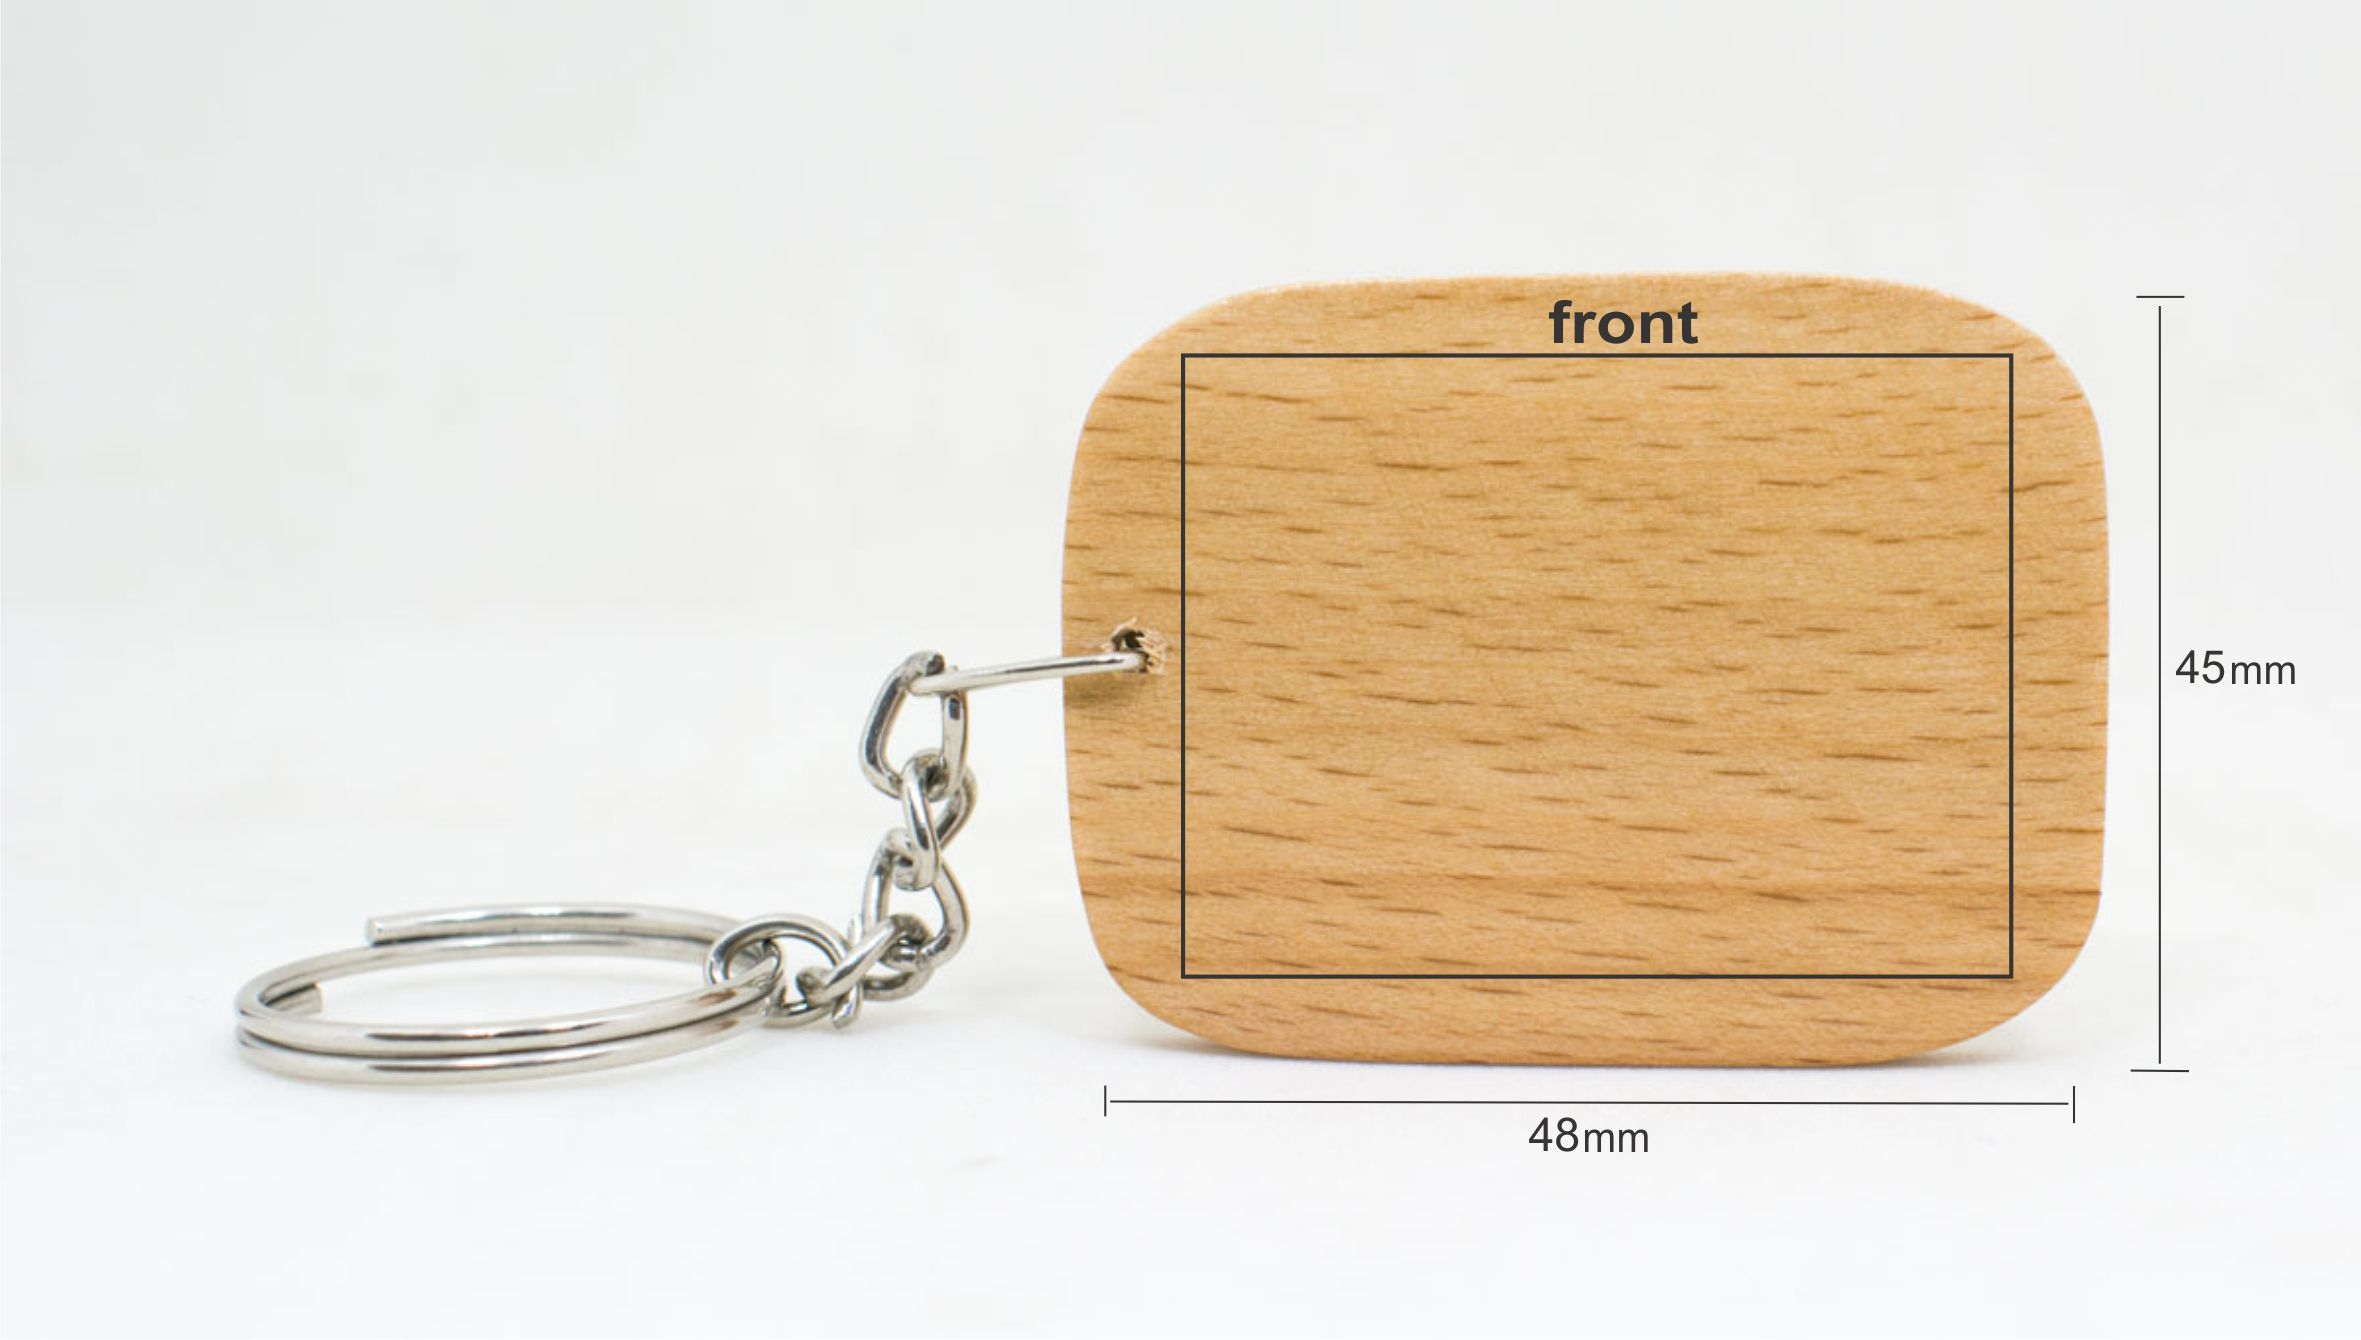 Custom Engraved Key Chain - Chamfered Square